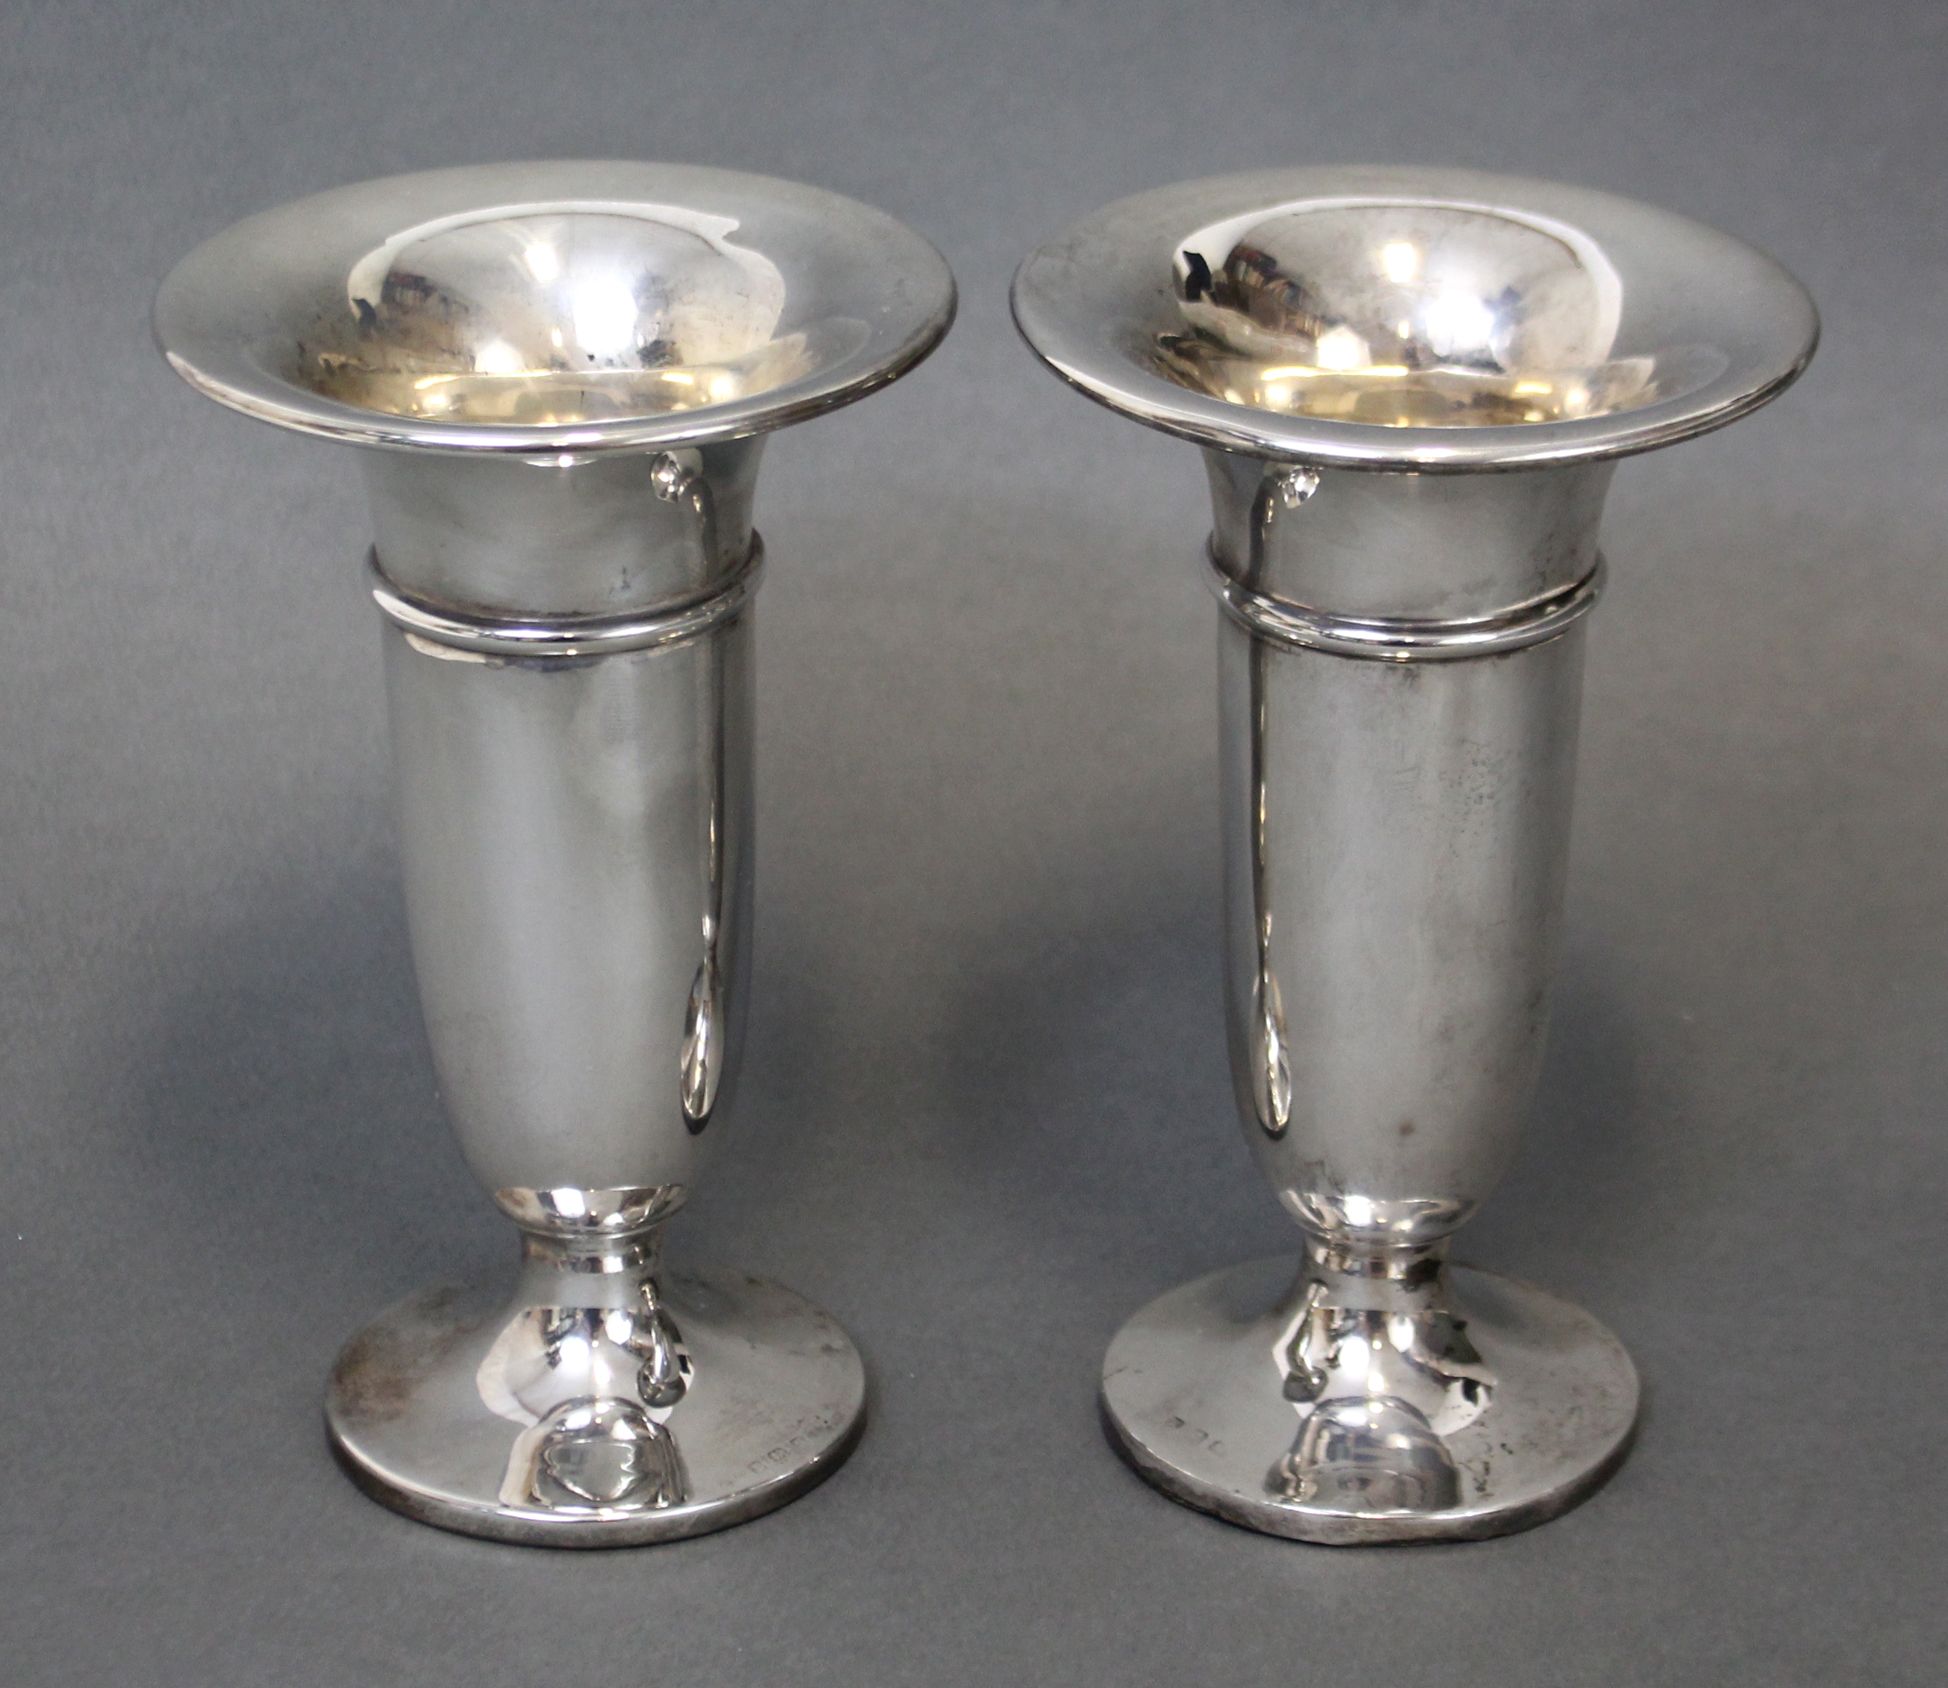 Lot 25 - A pair of Edwardian trumpet-shaped spill vases with wide flared necks, Birmingham 1902 (maker's